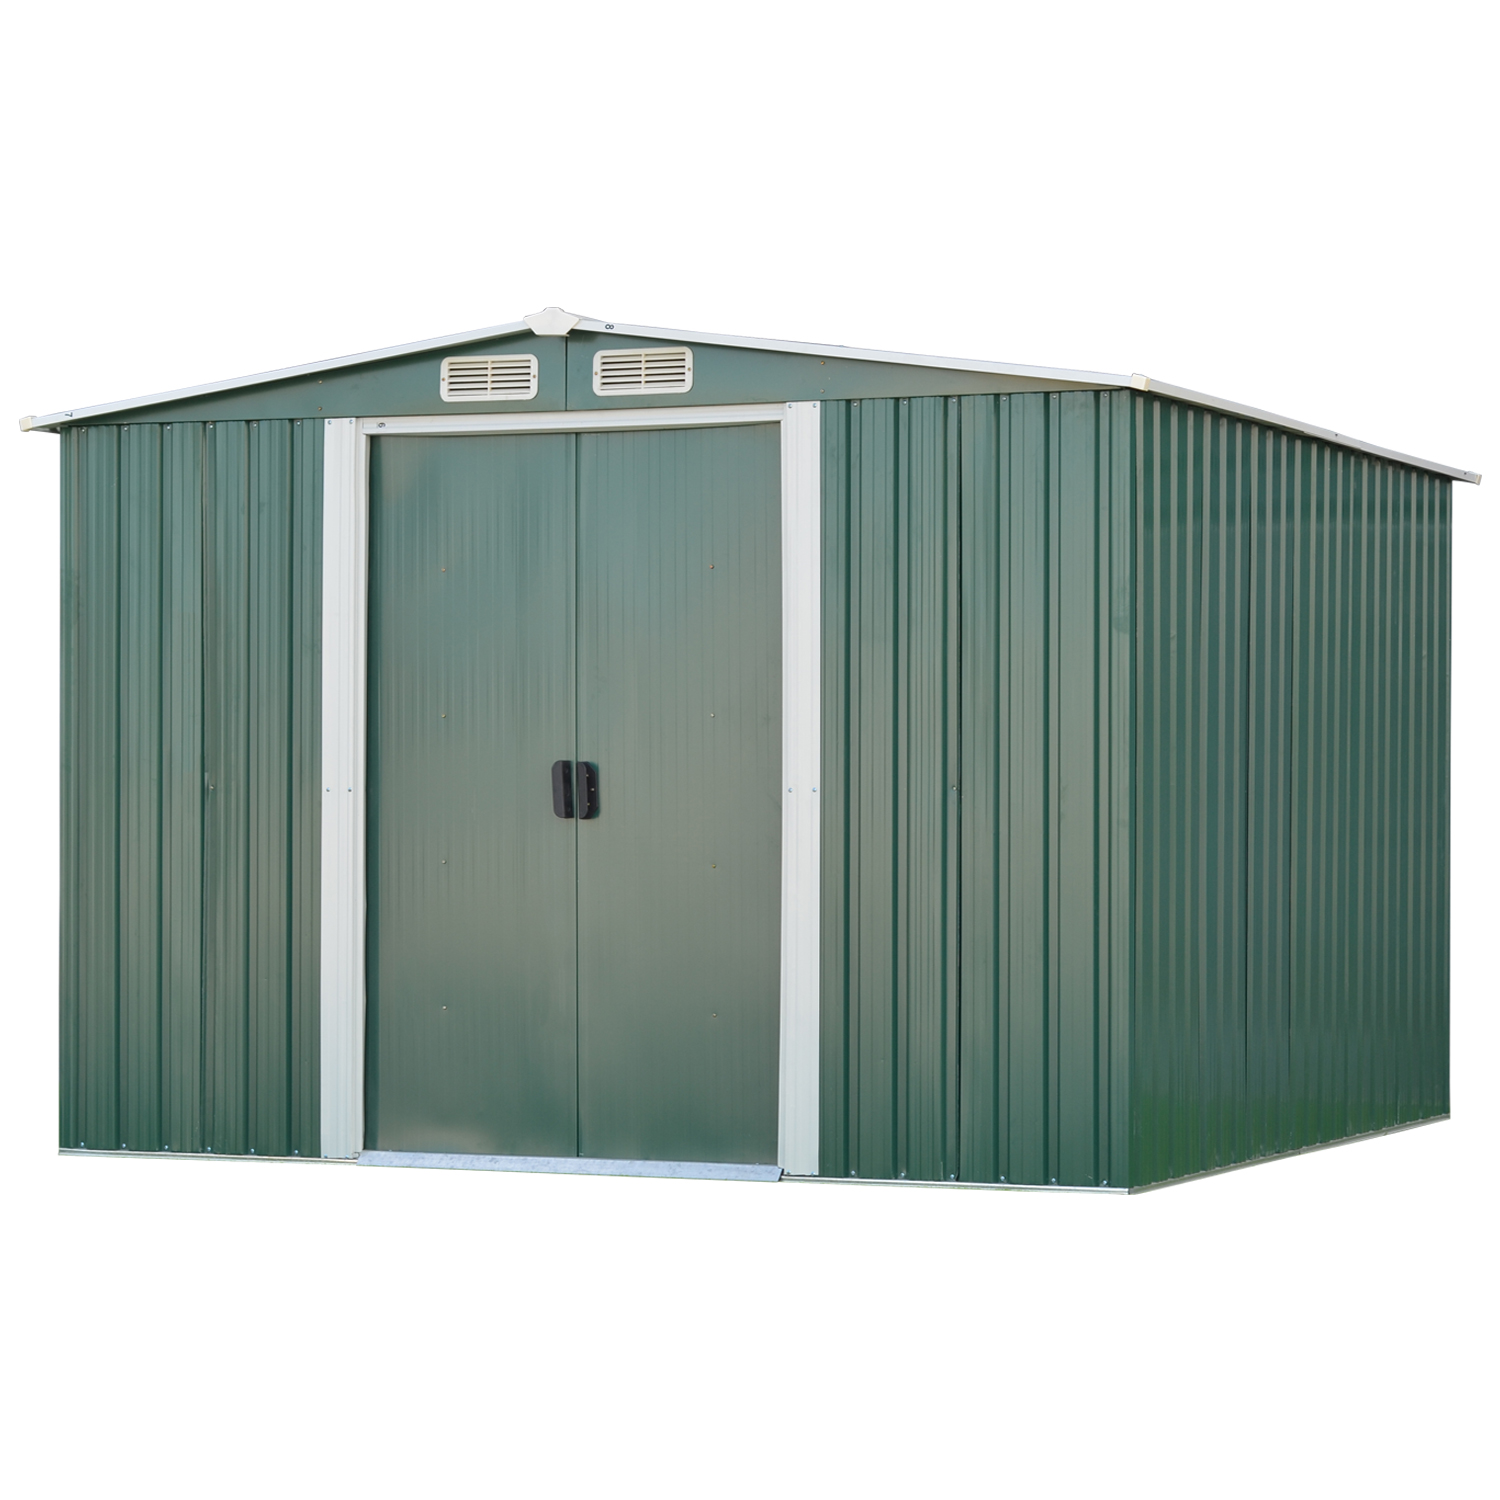 Details about 3 Sizes Garden Storage Shed All Weather Tool Utility Outdoor  Patio Backyard Lawn